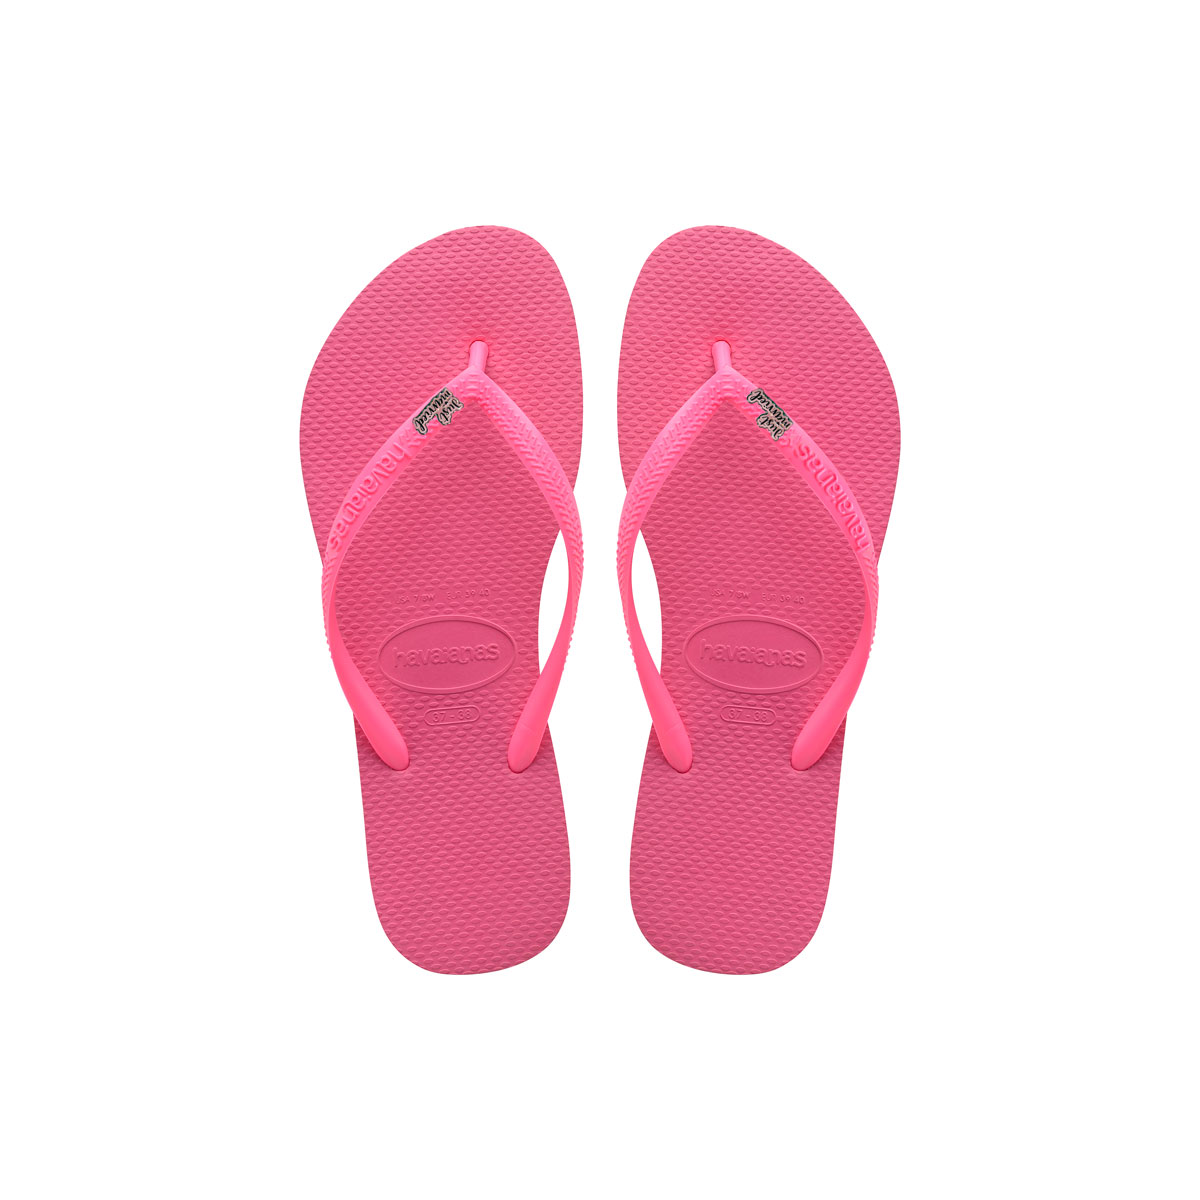 Havaianas Shocking Pink Flip Flops with Pink Glitter Just Married Charm